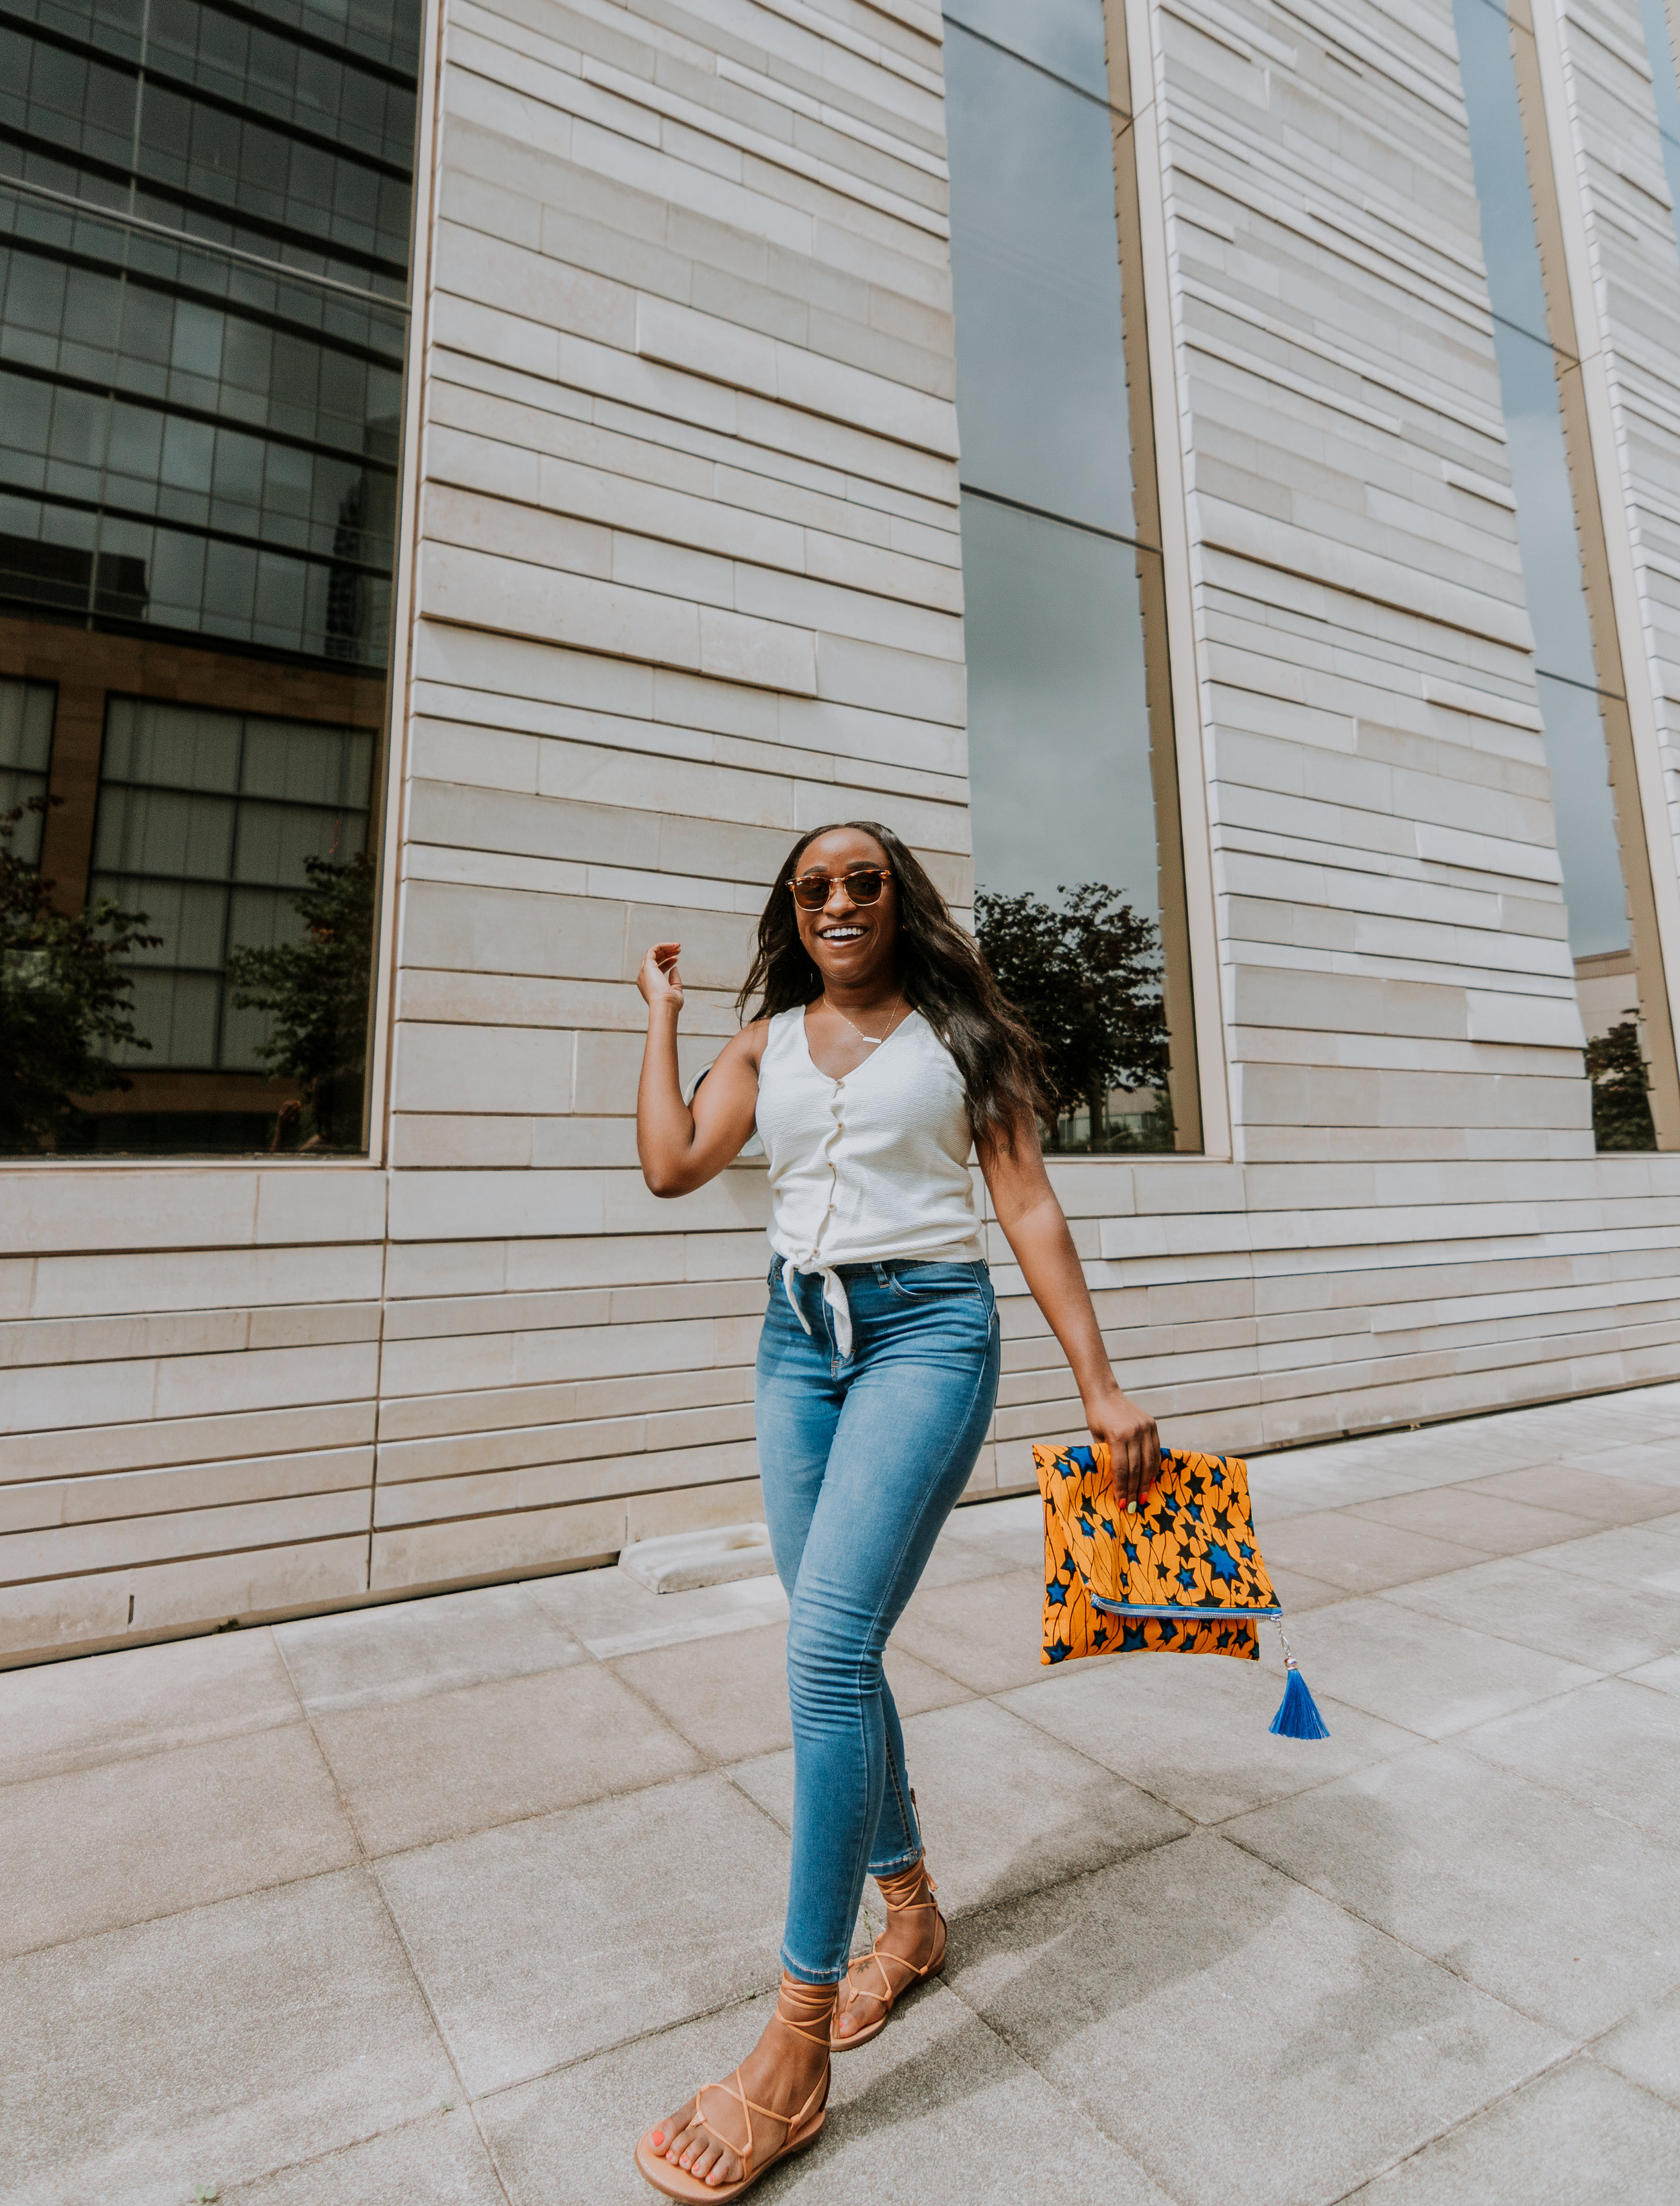 THE DEETS:  Texture & Thread Button-Front Tie Top -   Madewell  ; High-rise Skinny Crop Jeans -   Fashion Nova  ; Boardwalk Lace-up Sandals -   Madewell  ; OMA Ankara Clutch Purse -  AboveandBeyondDzyns  ; Clubmaster Sunglasses -   Ray-Ban